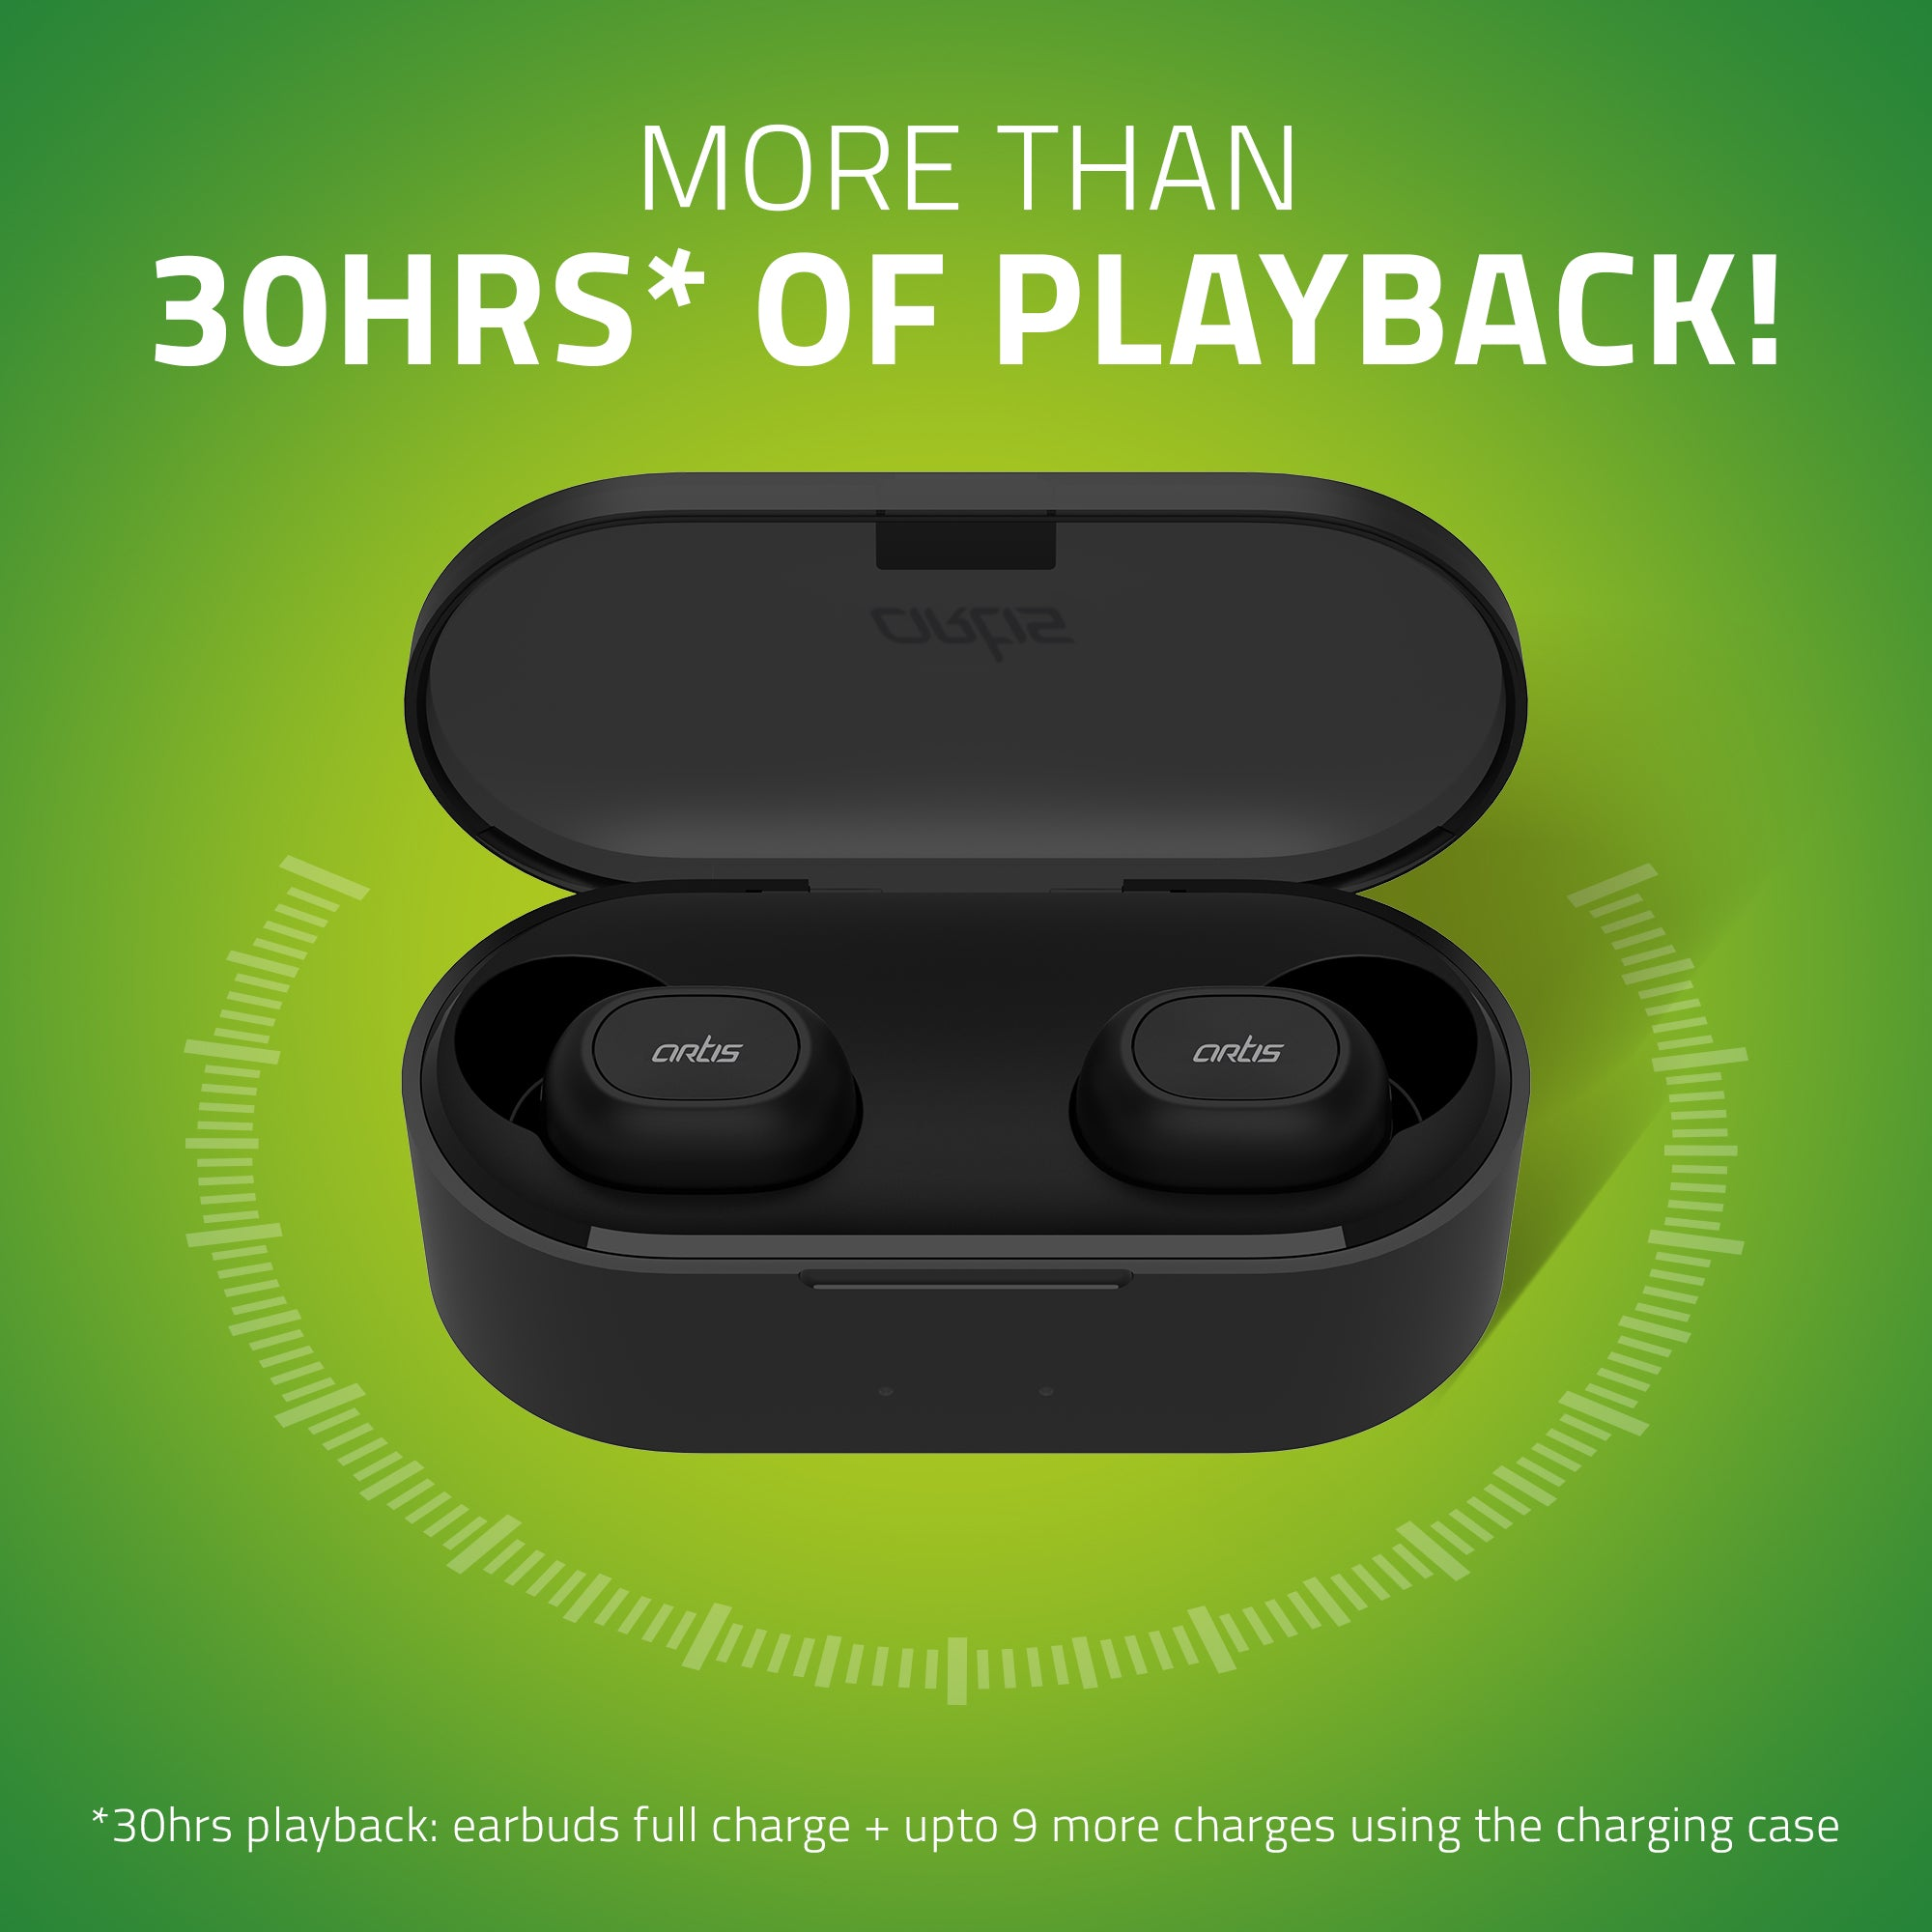 BE410M Artis TWS Earbuds with 30 hrs of Playback